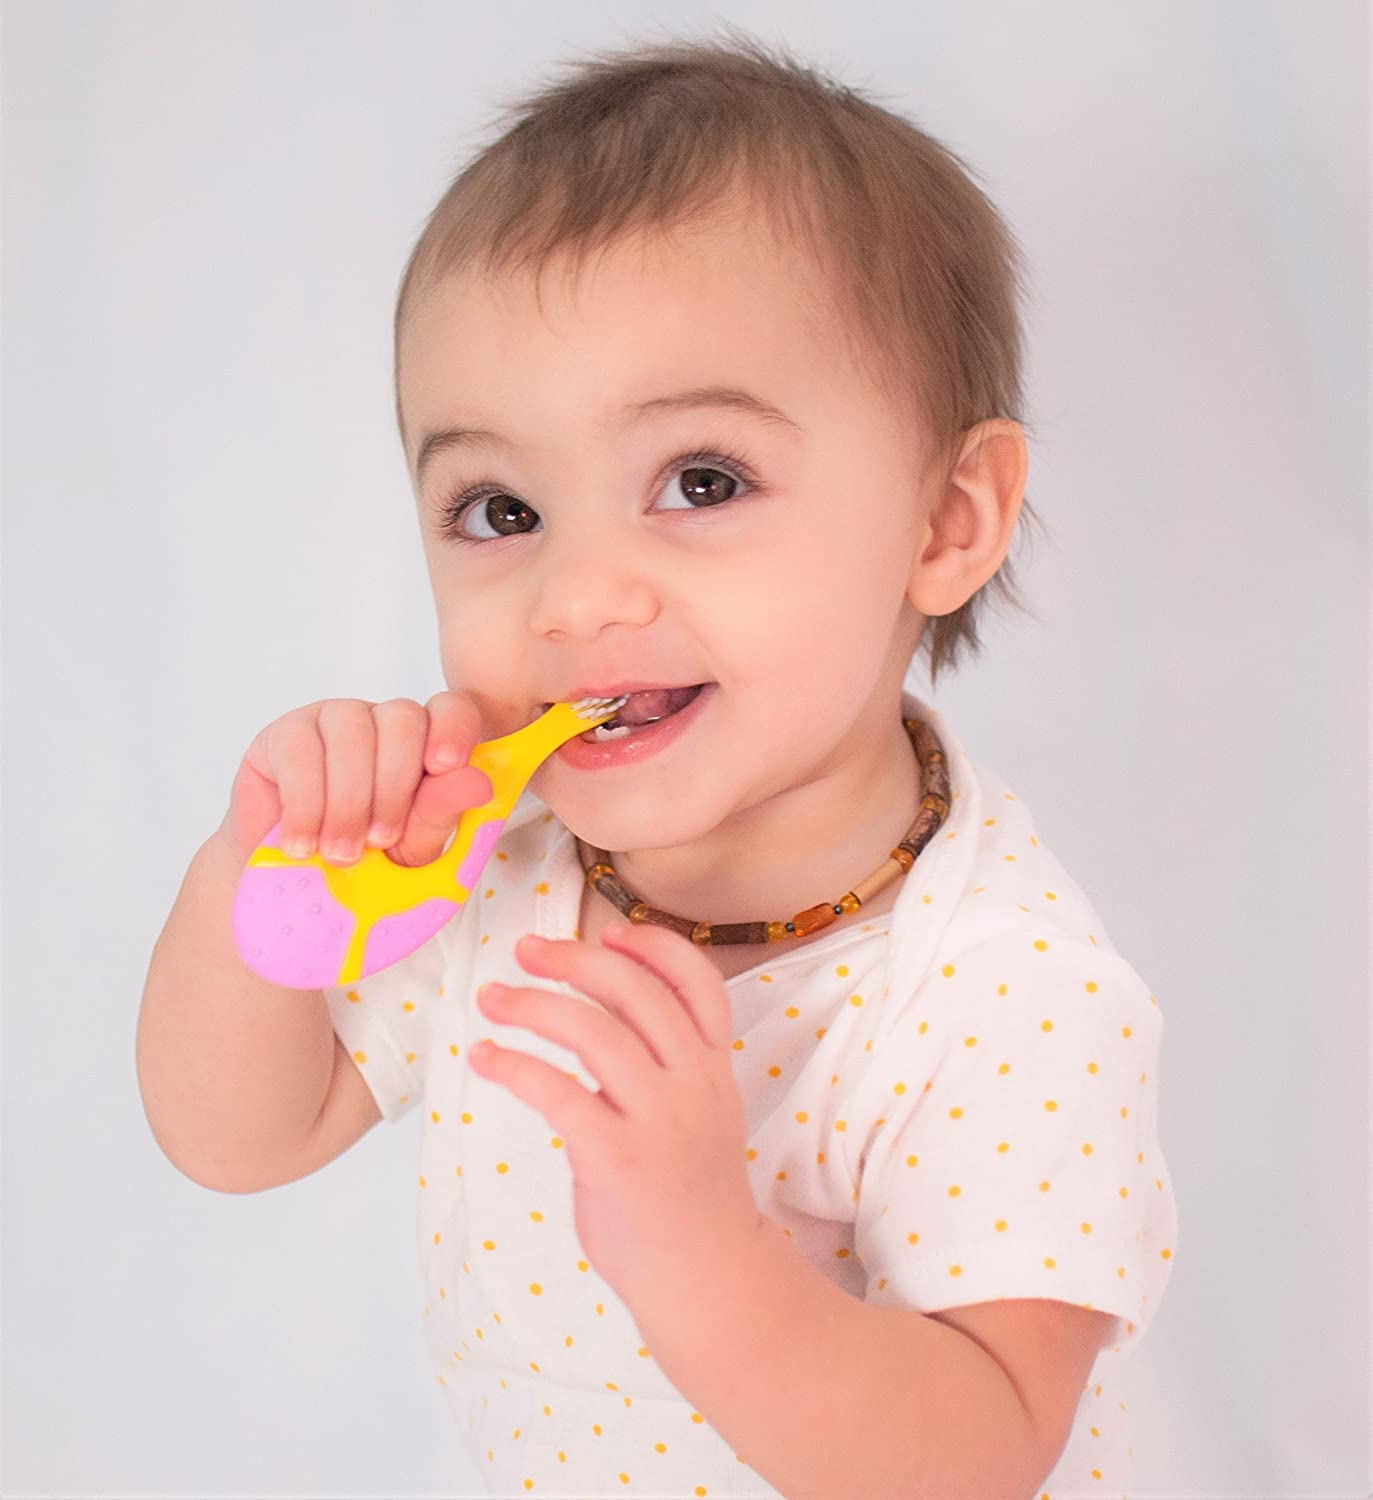 Amazon.com : Farber Baby Toothbrush & Toddler Toothbrush For 0-2 Years Old | Teething Finger Handle | BPA Free with Baby Toothpaste Indicator | Extra Soft ...